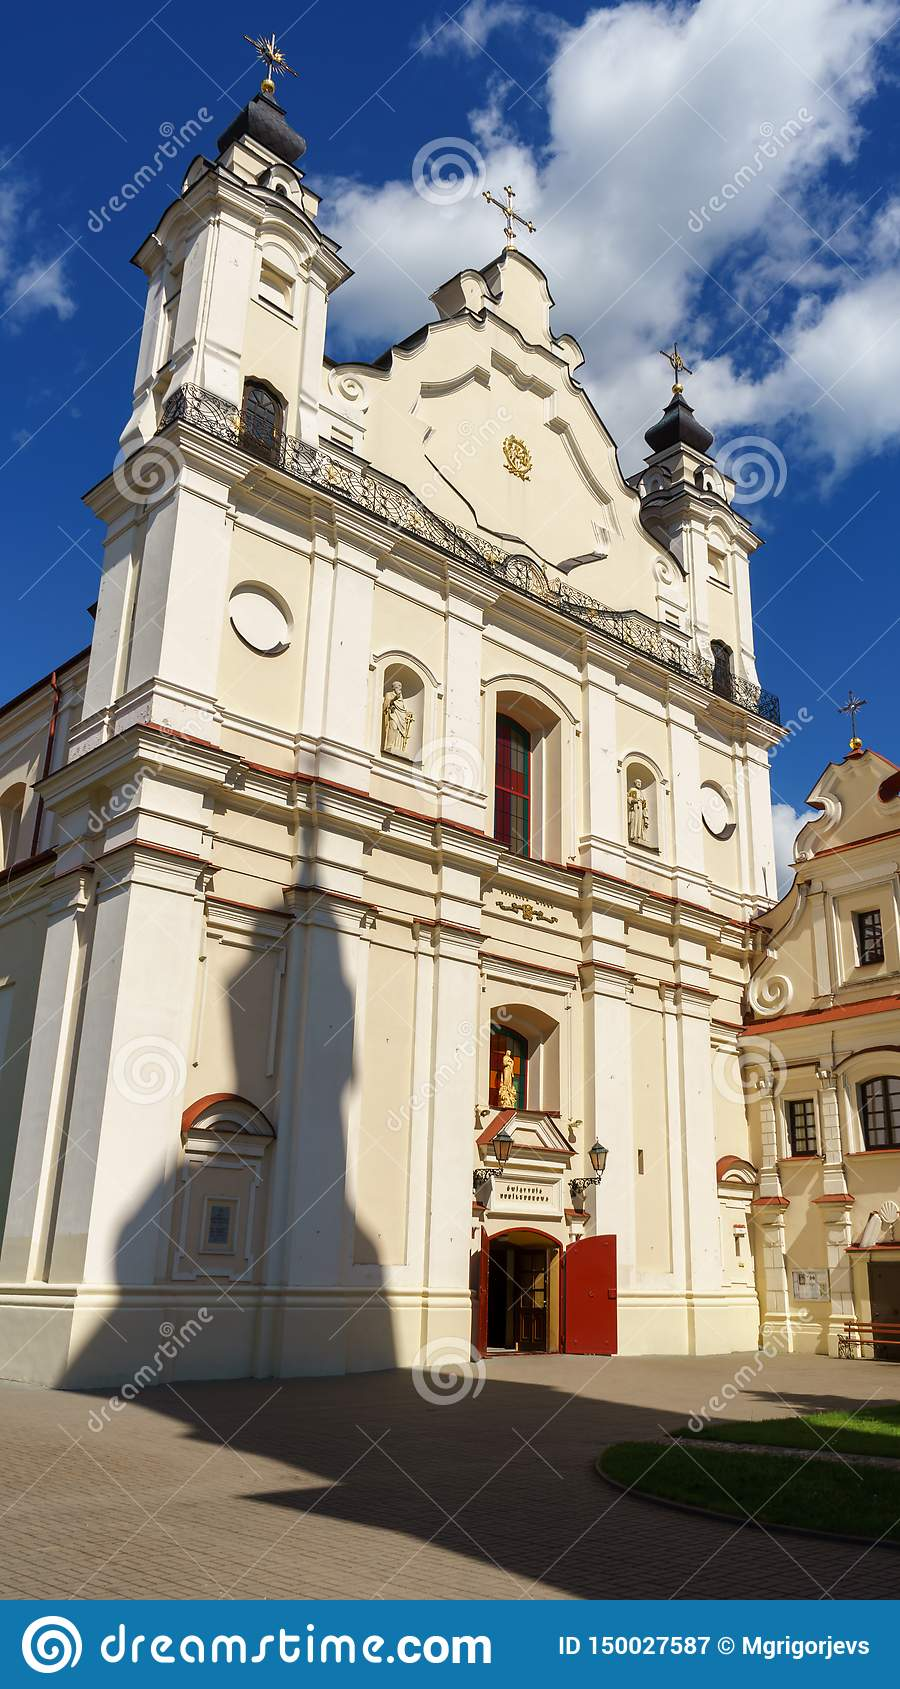 Cathedral Basilica of the Assumption of the Blessed Virgin Mary with the shadow of its Bell tower, Pinsk, Belarus, June 21, 2017